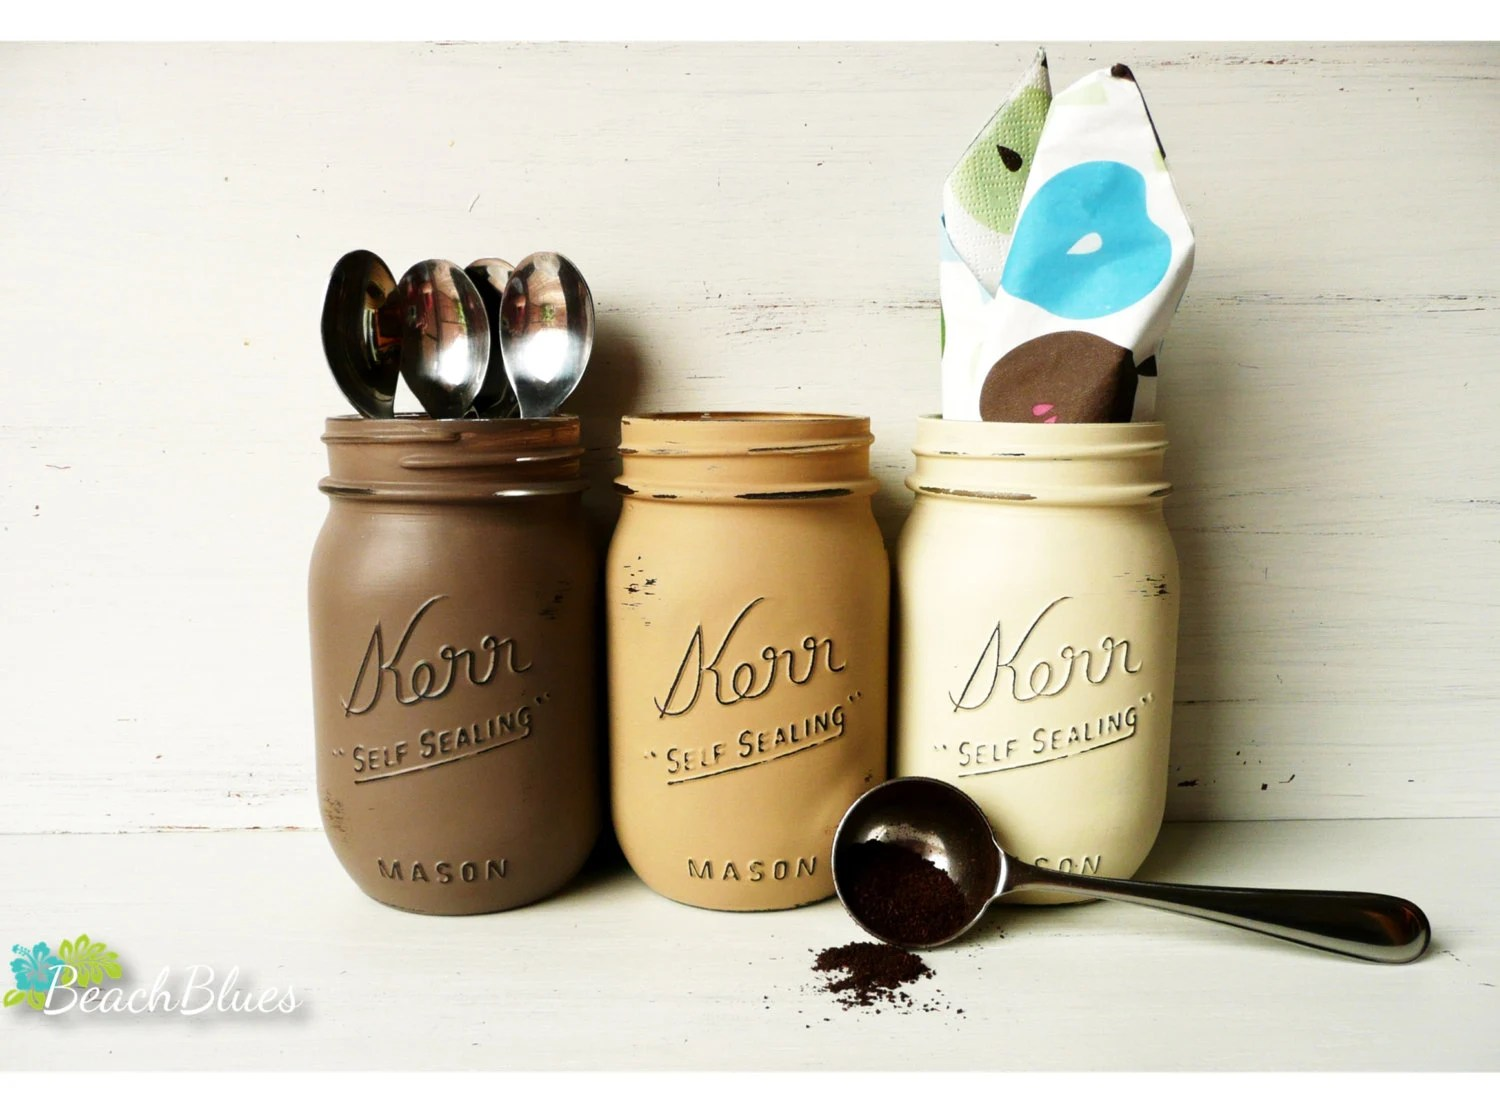 Cafe - Coffee and Tea Canisters - Painted Mason Jars - Home and Kitchen Decor - Rustic - BeachBlues